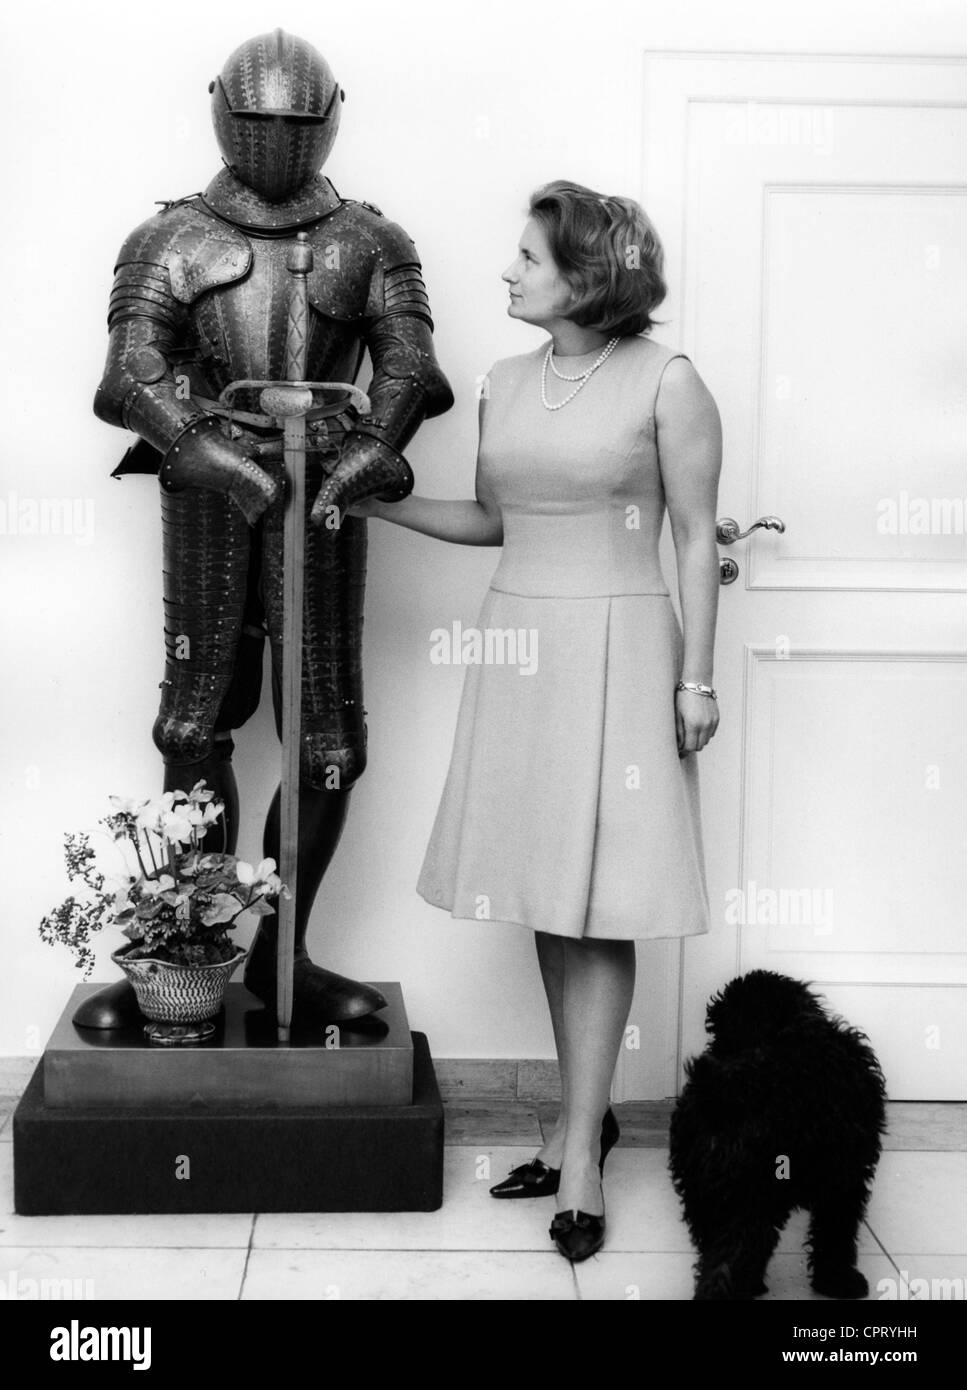 Prussia, Kira Princess of, 27.6.1943 - 10.1.2004, in her appartement, besides a knight's armour, 1966, Additional - Stock Image